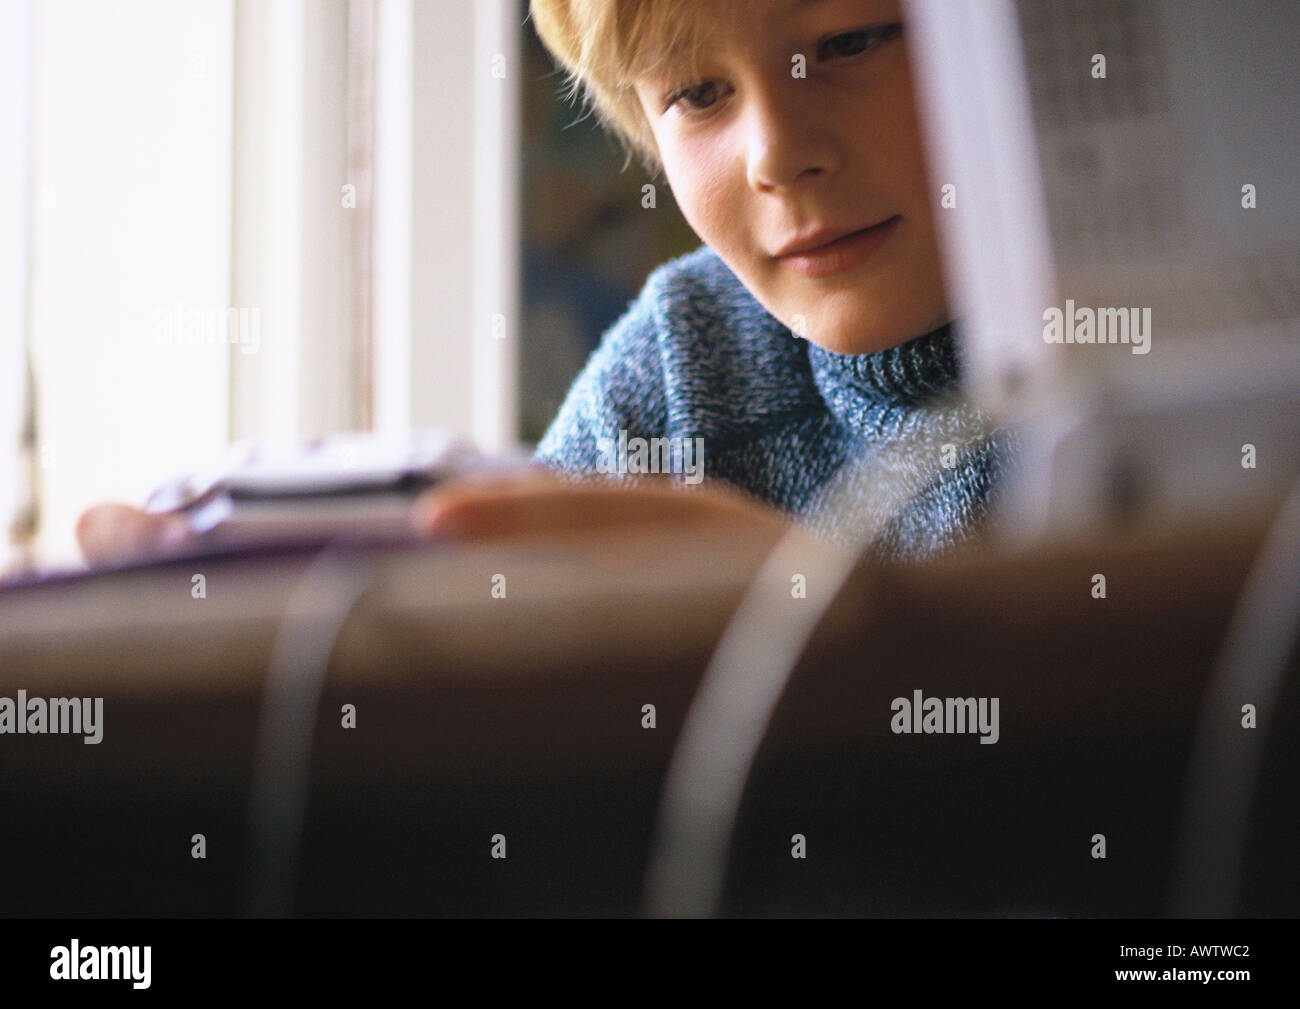 Young boy looking at video game, close up, computer and desk blurred in foreground - Stock Image